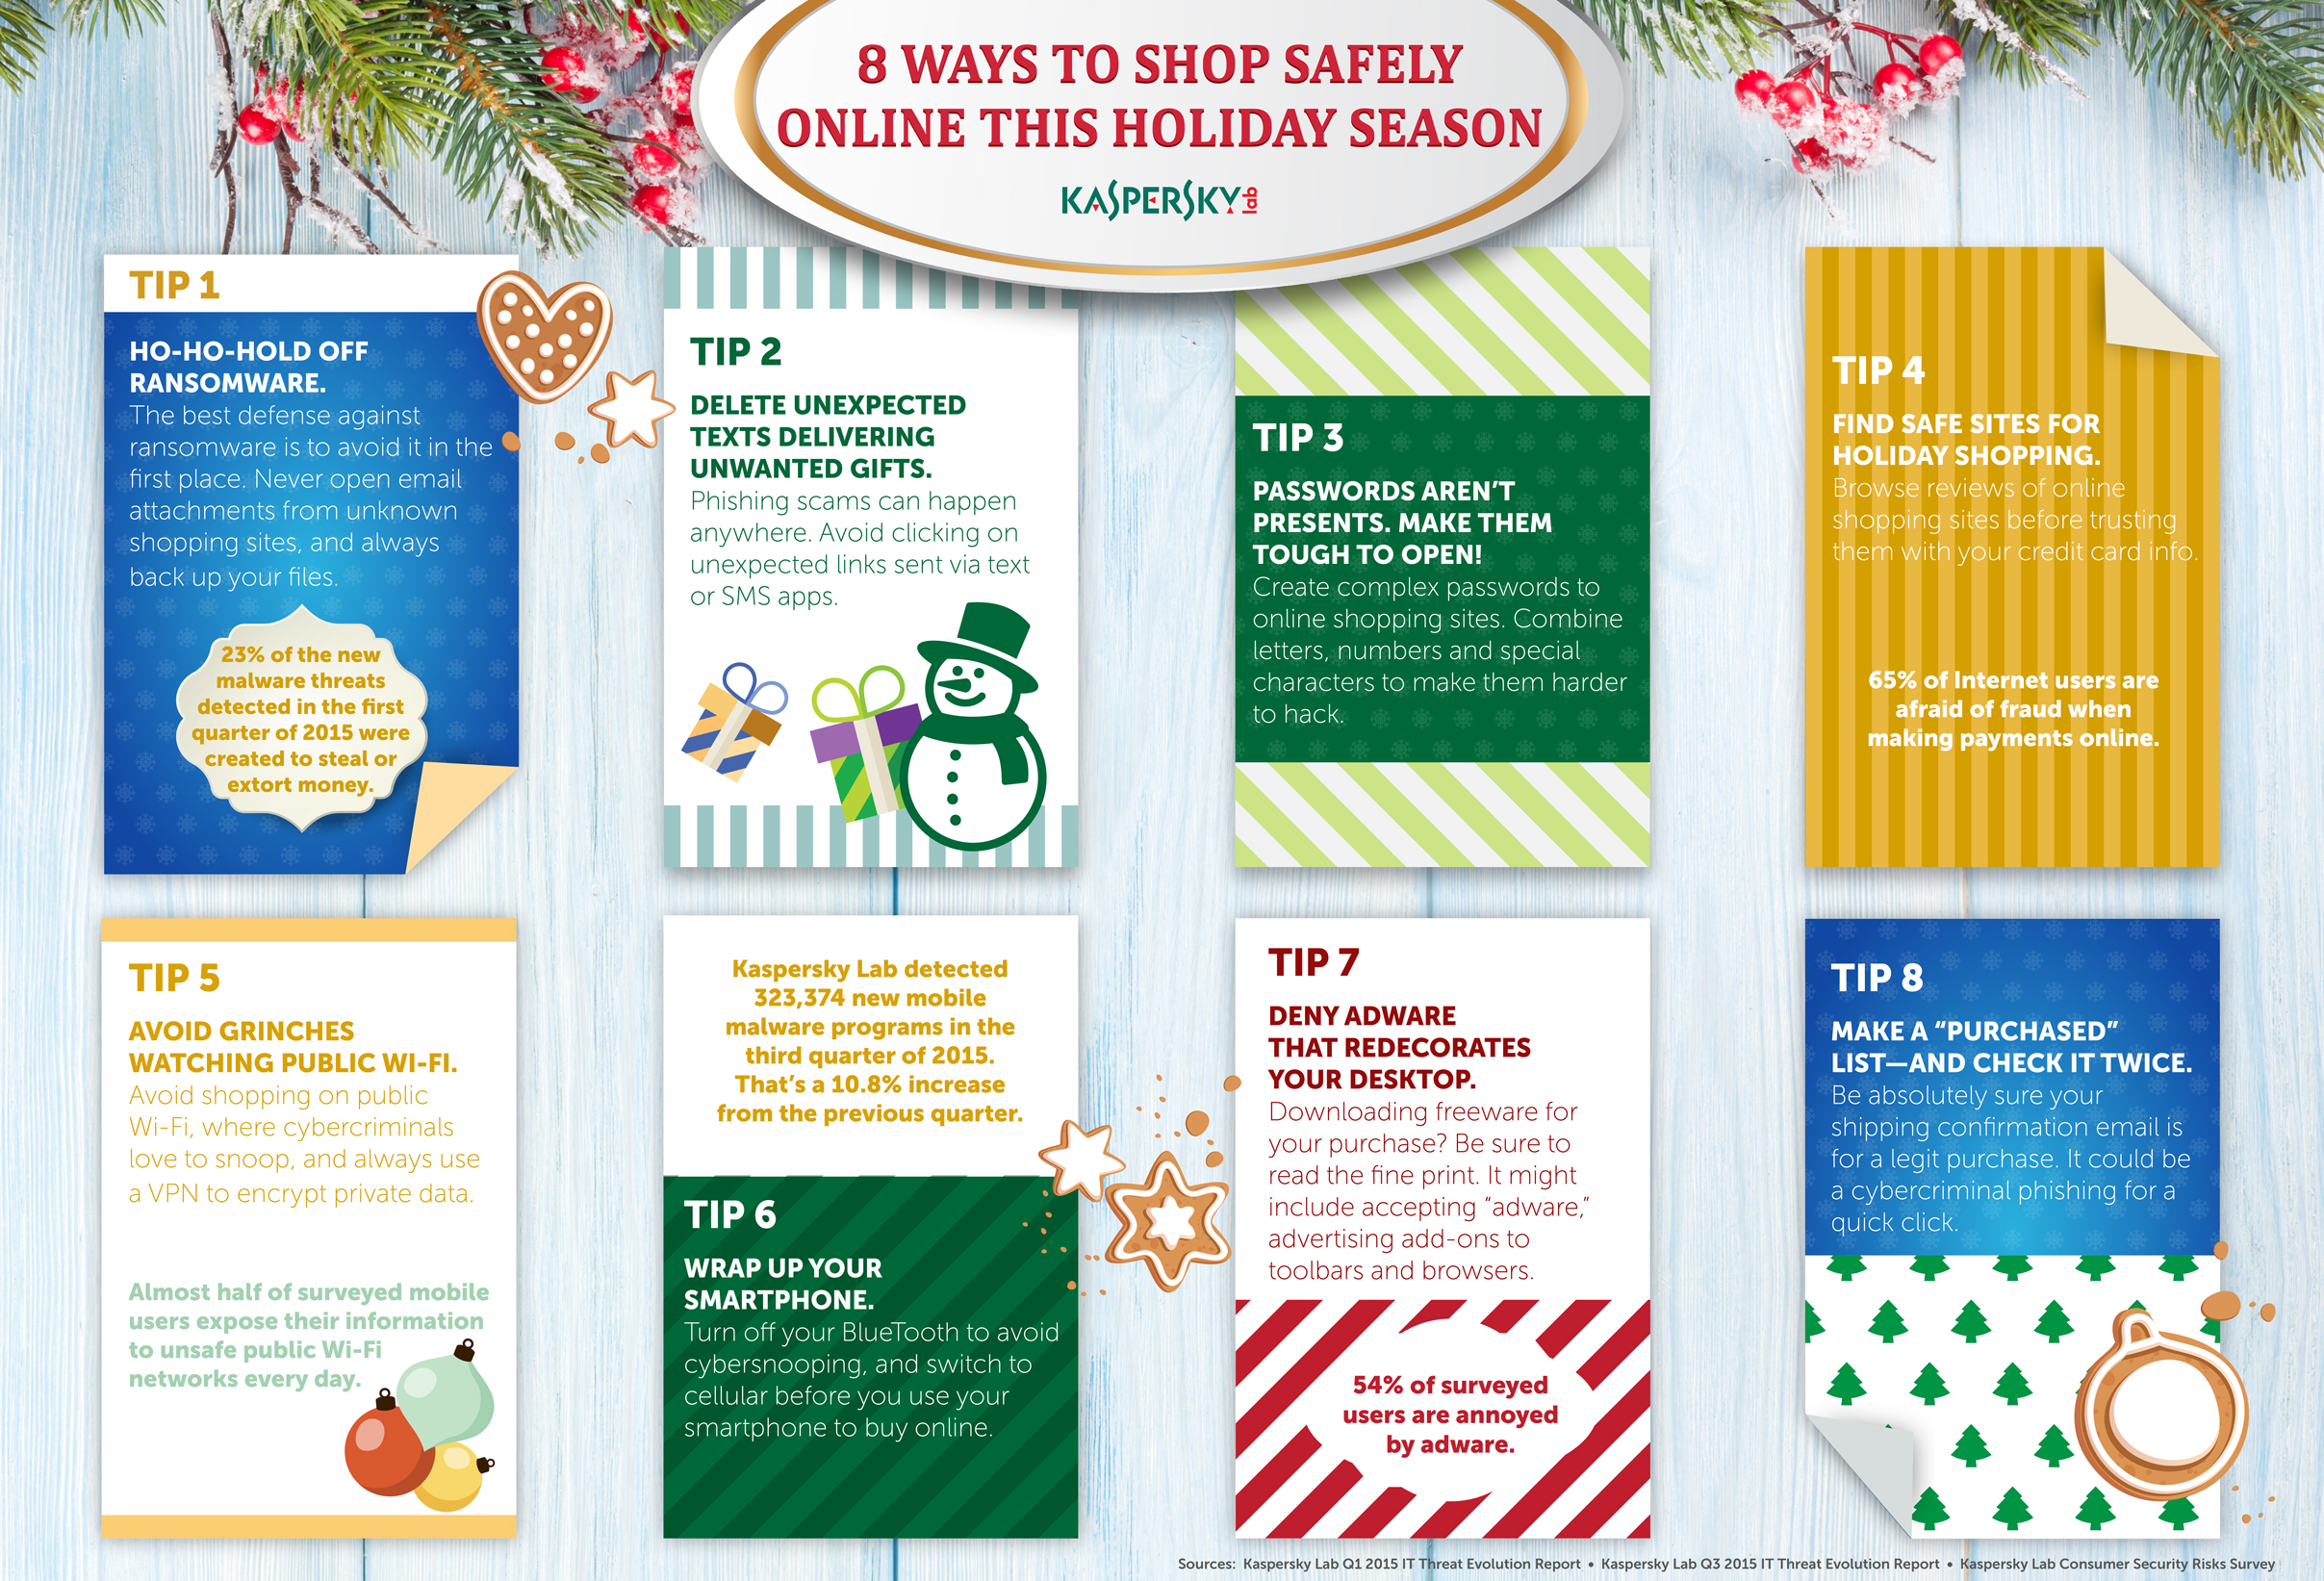 Shop Safe online this holiday season